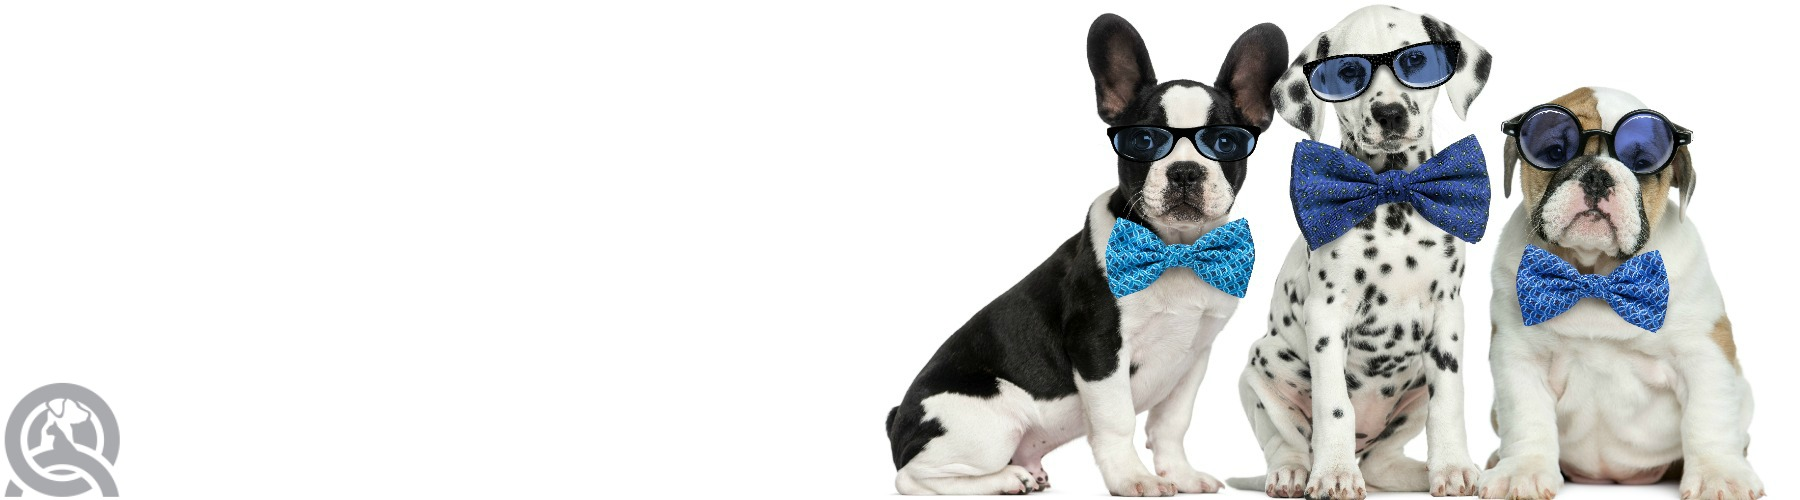 Certified Dog Grooming Course